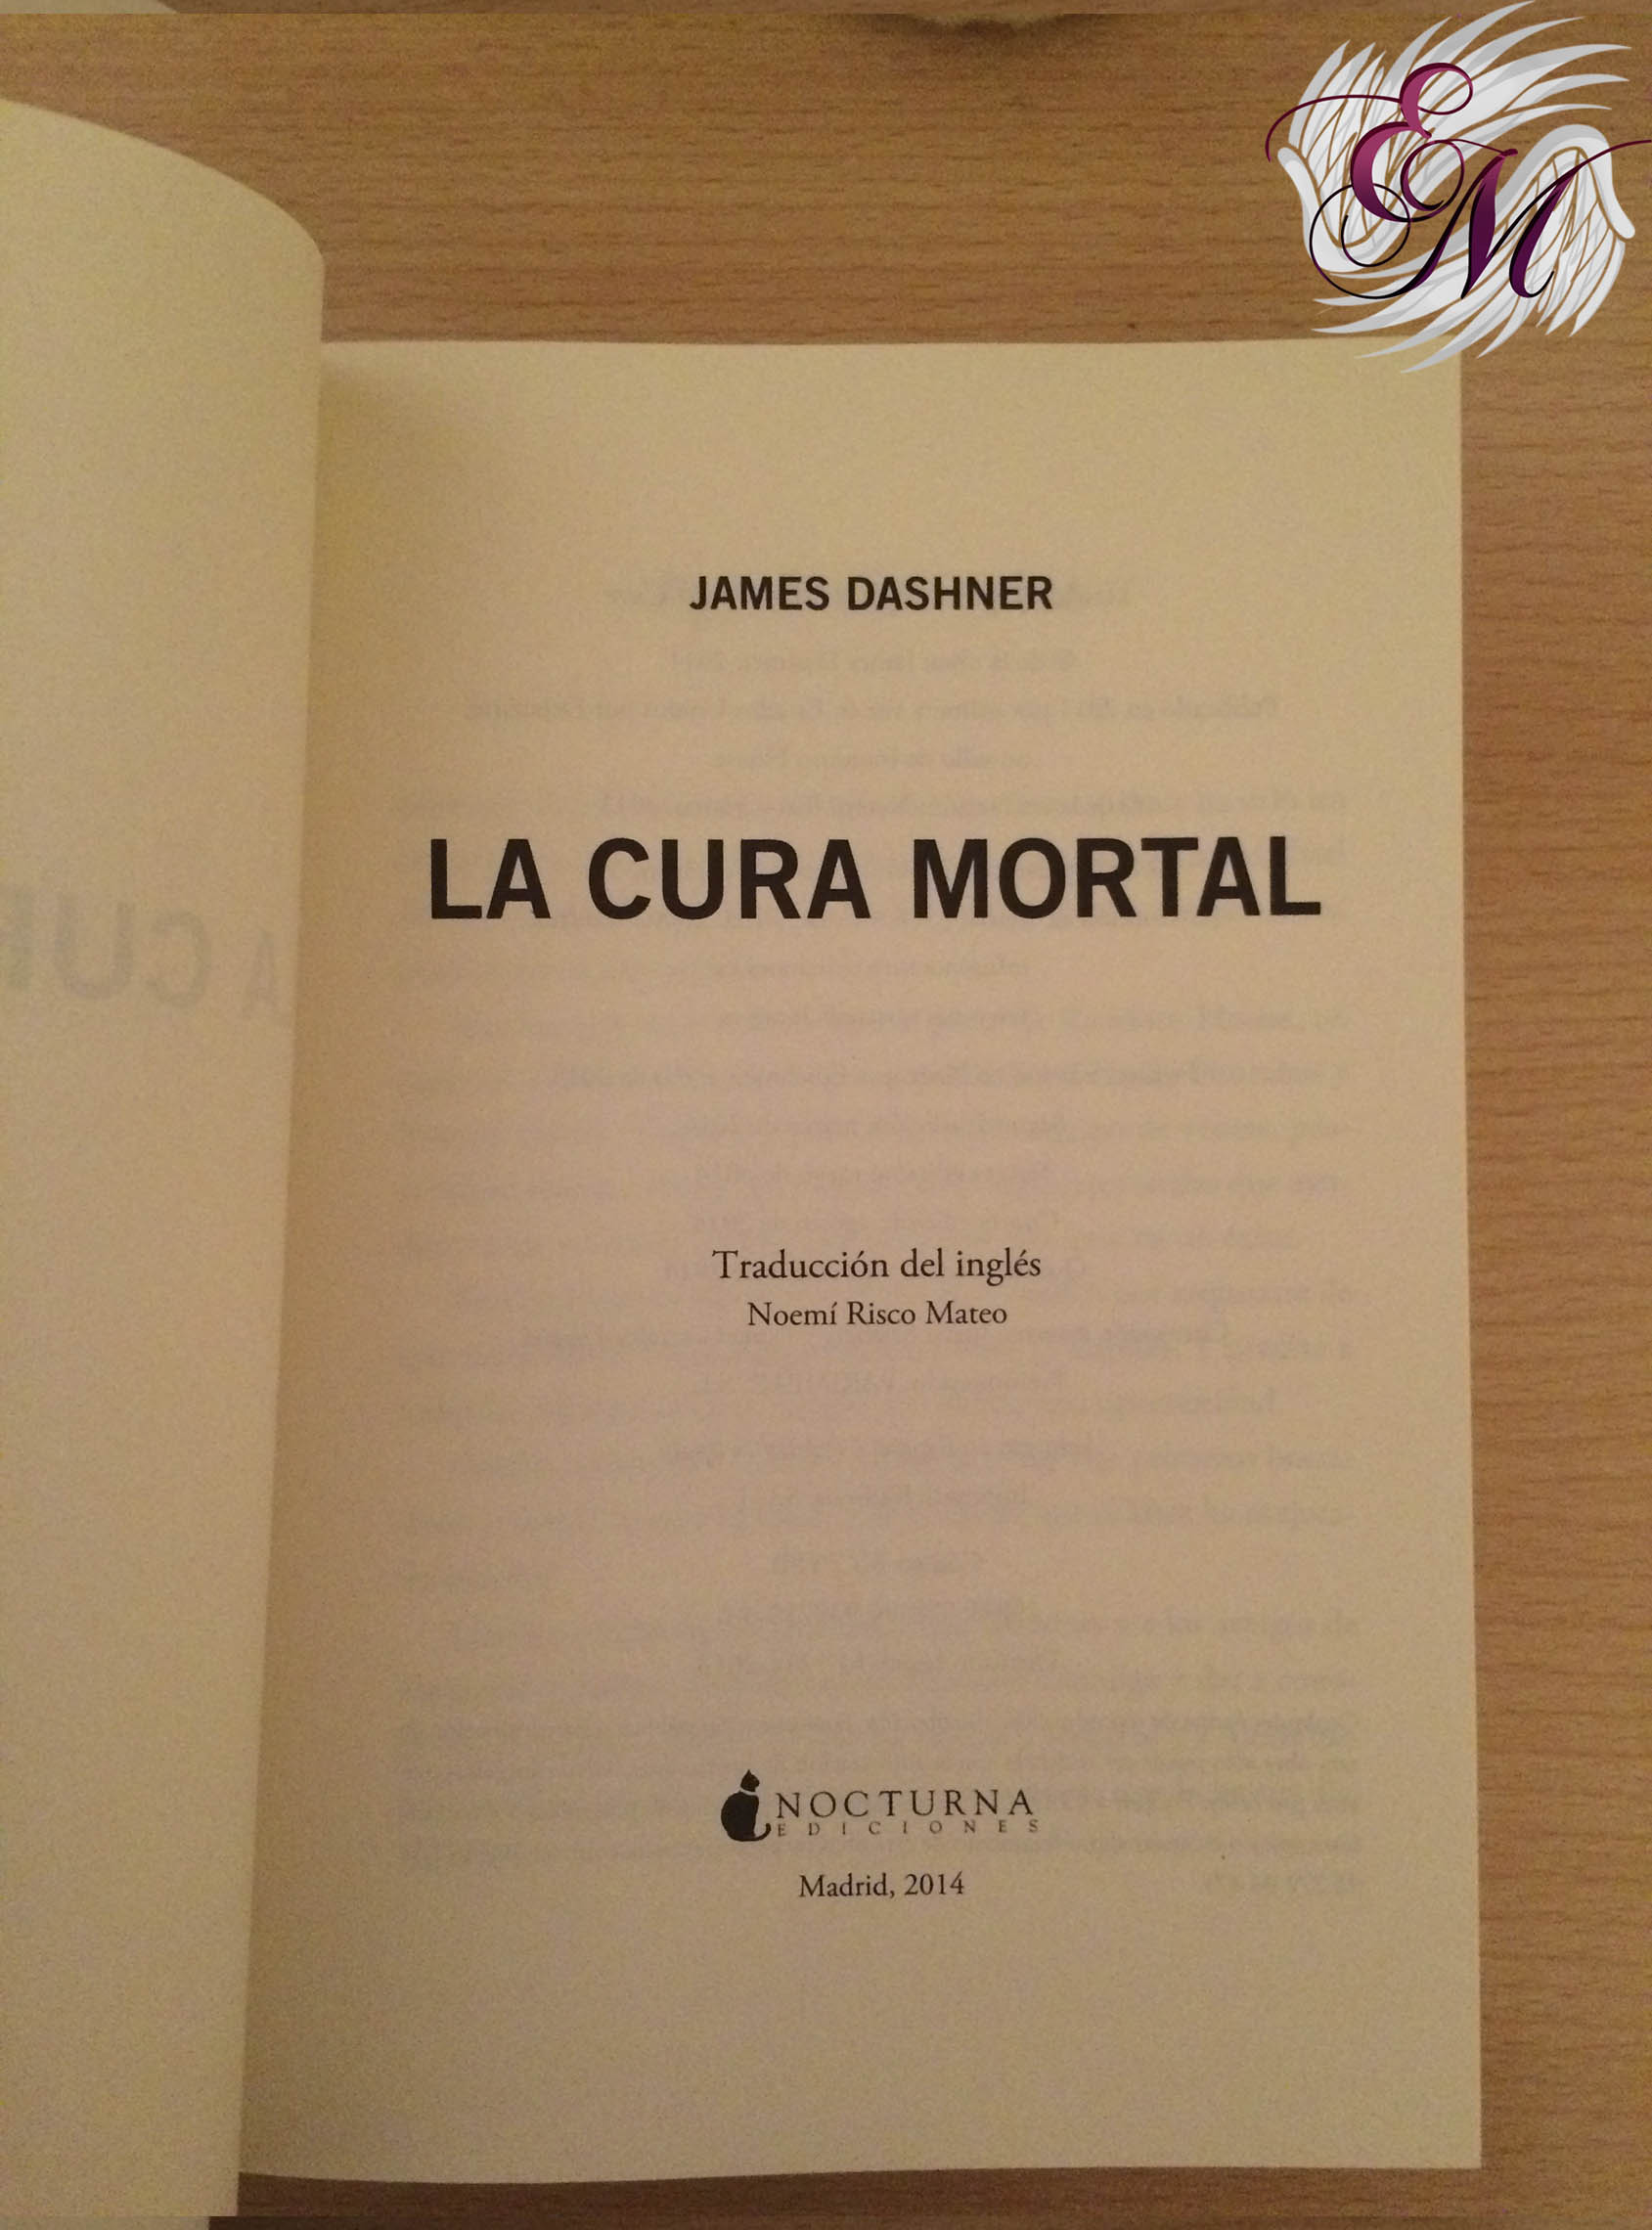 Trilogía: El corredor del laberinto, de James Dashner